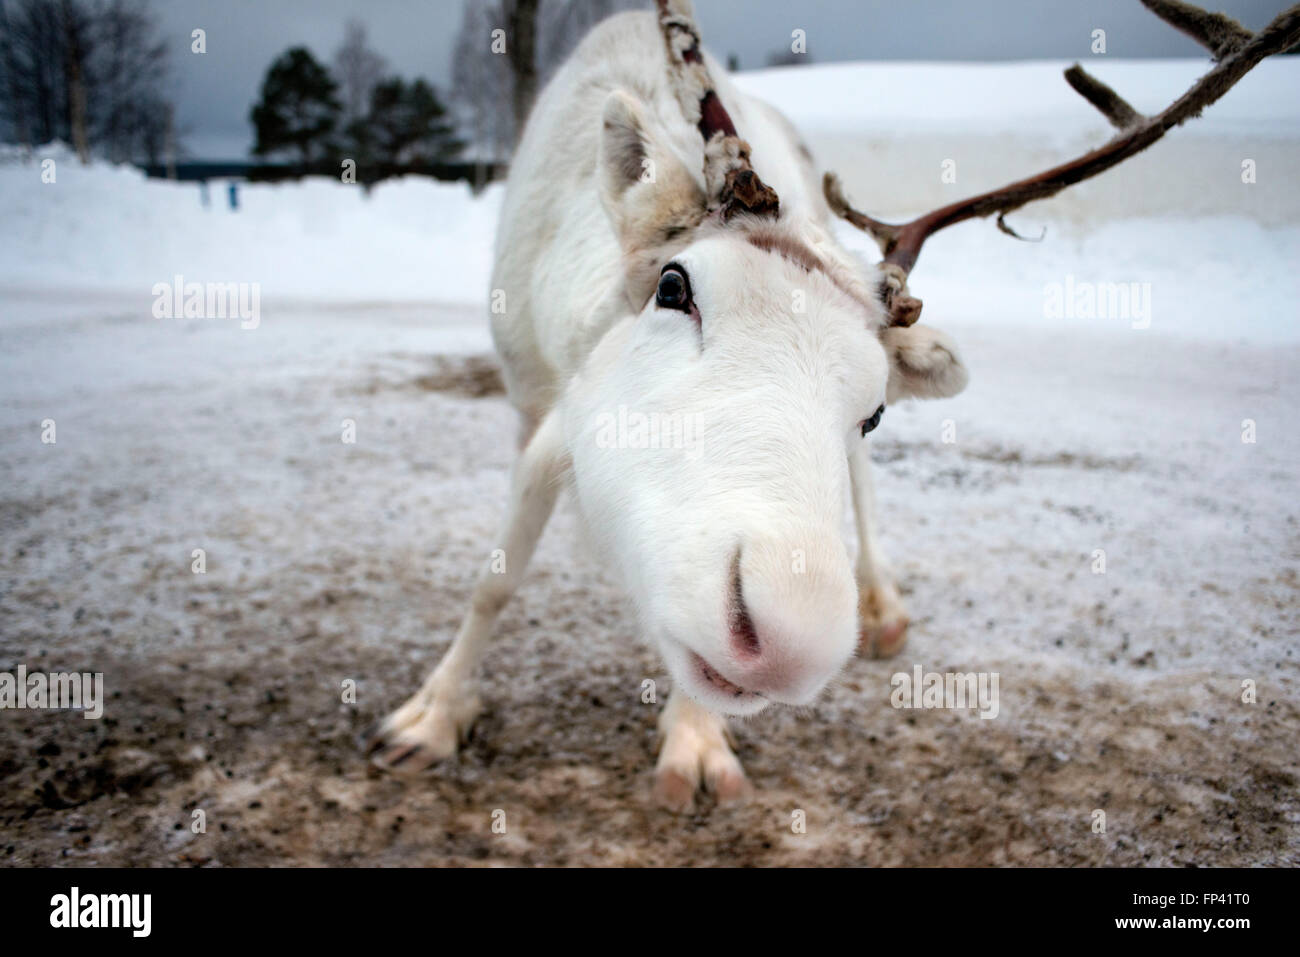 Reindeer in Rovaniemi Lapland Finland. The reindeer is an icon of Finnish Lapland, and there's a good reason for - Stock Image